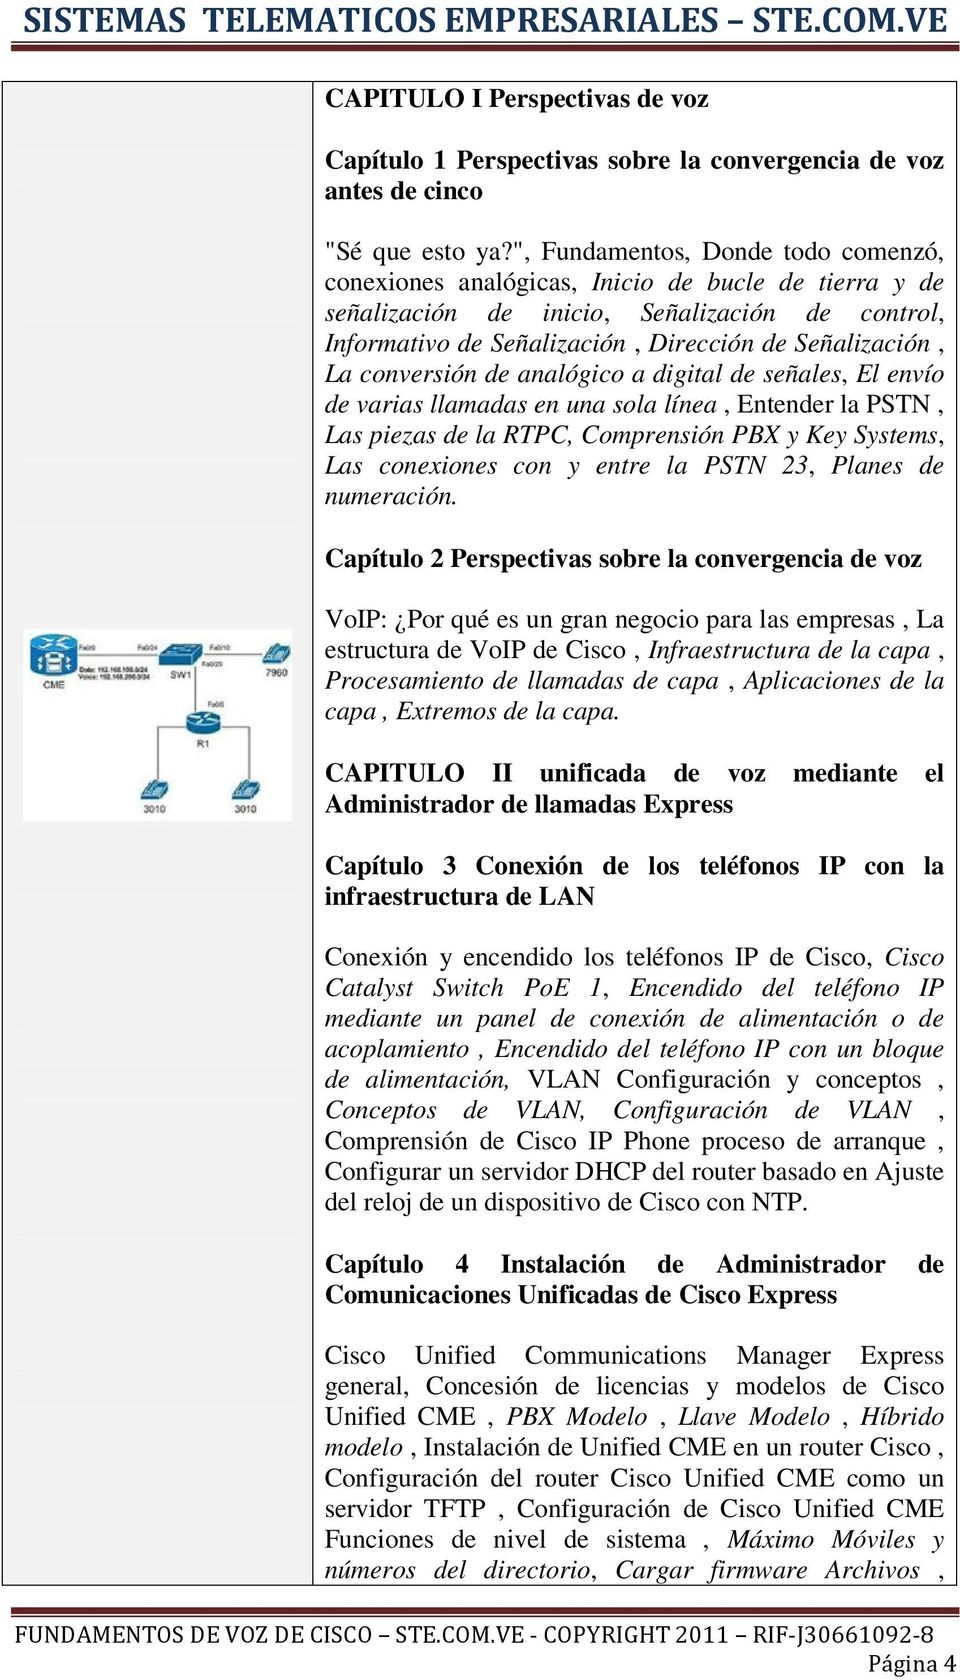 FUNDAMENTOS DE TELEFONIA IP DE CISCO - PDF